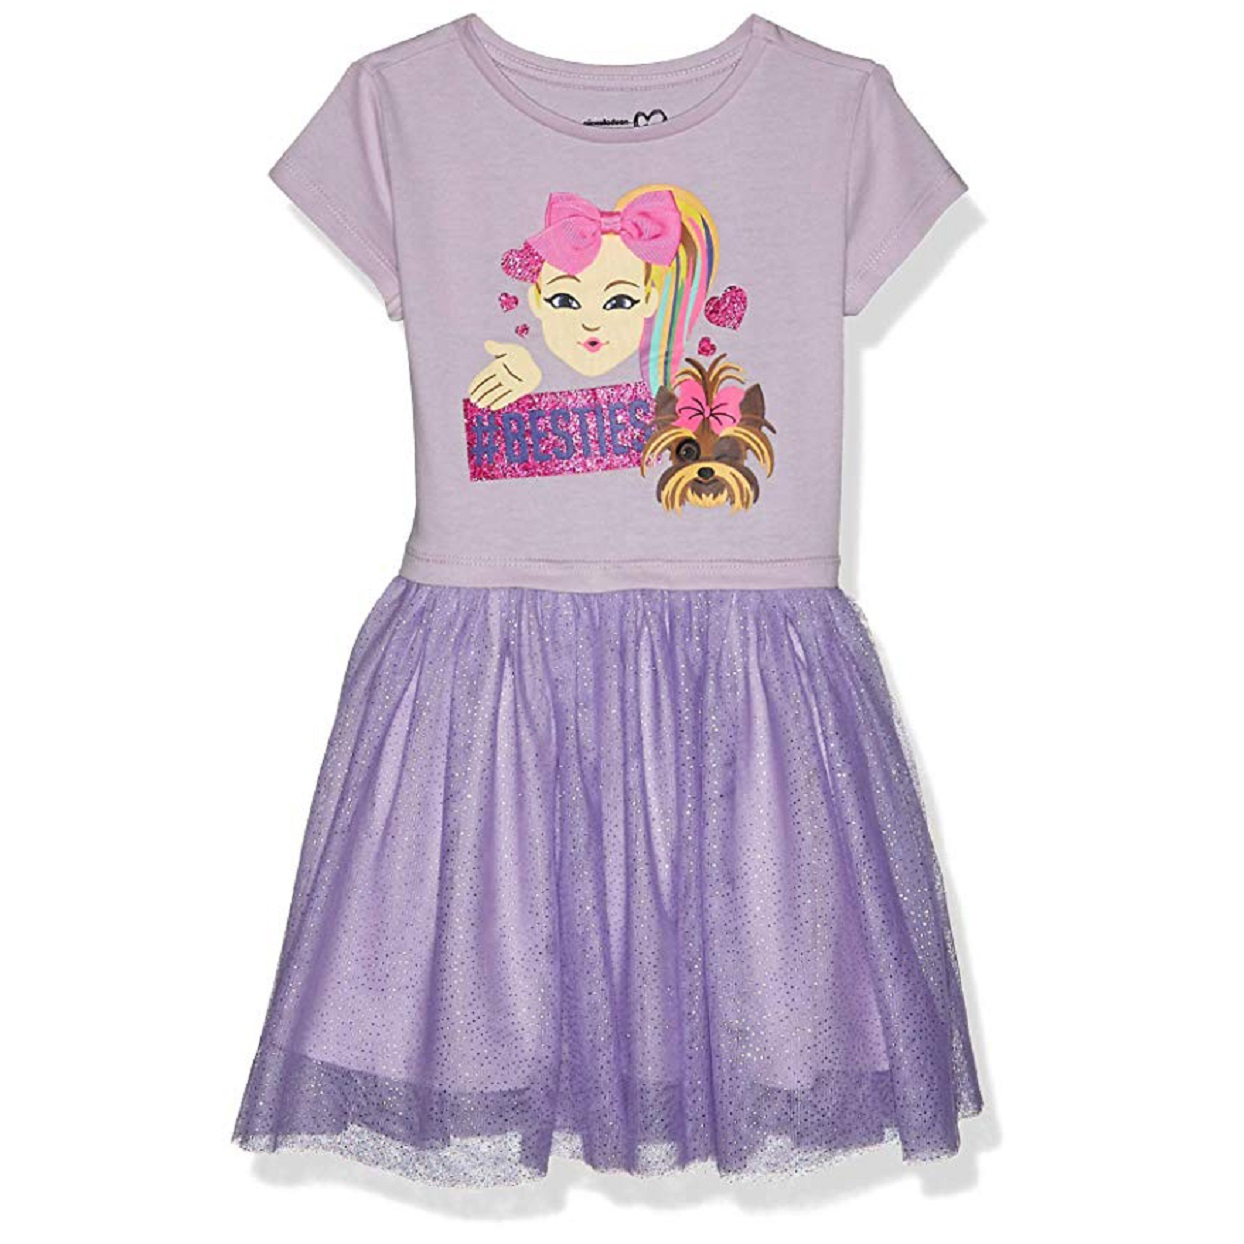 JoJo Siwa #Besties Tutu Dress with Tulle Skirt